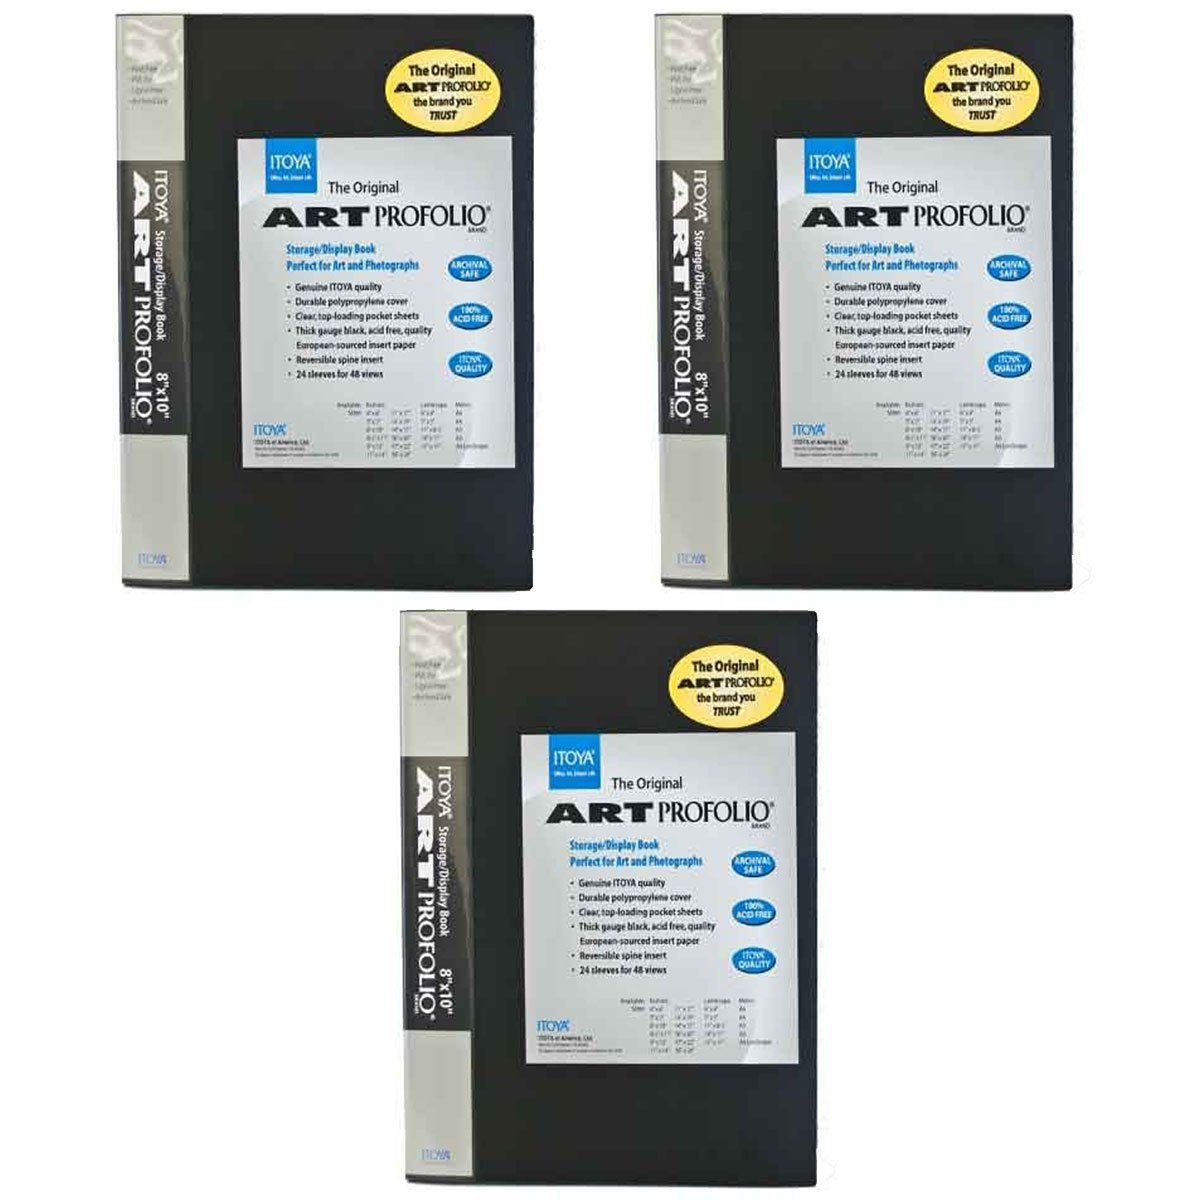 Itoya Art Profolio Original Storage/Display Book 8 x 10, 24 Pages Pack of 3